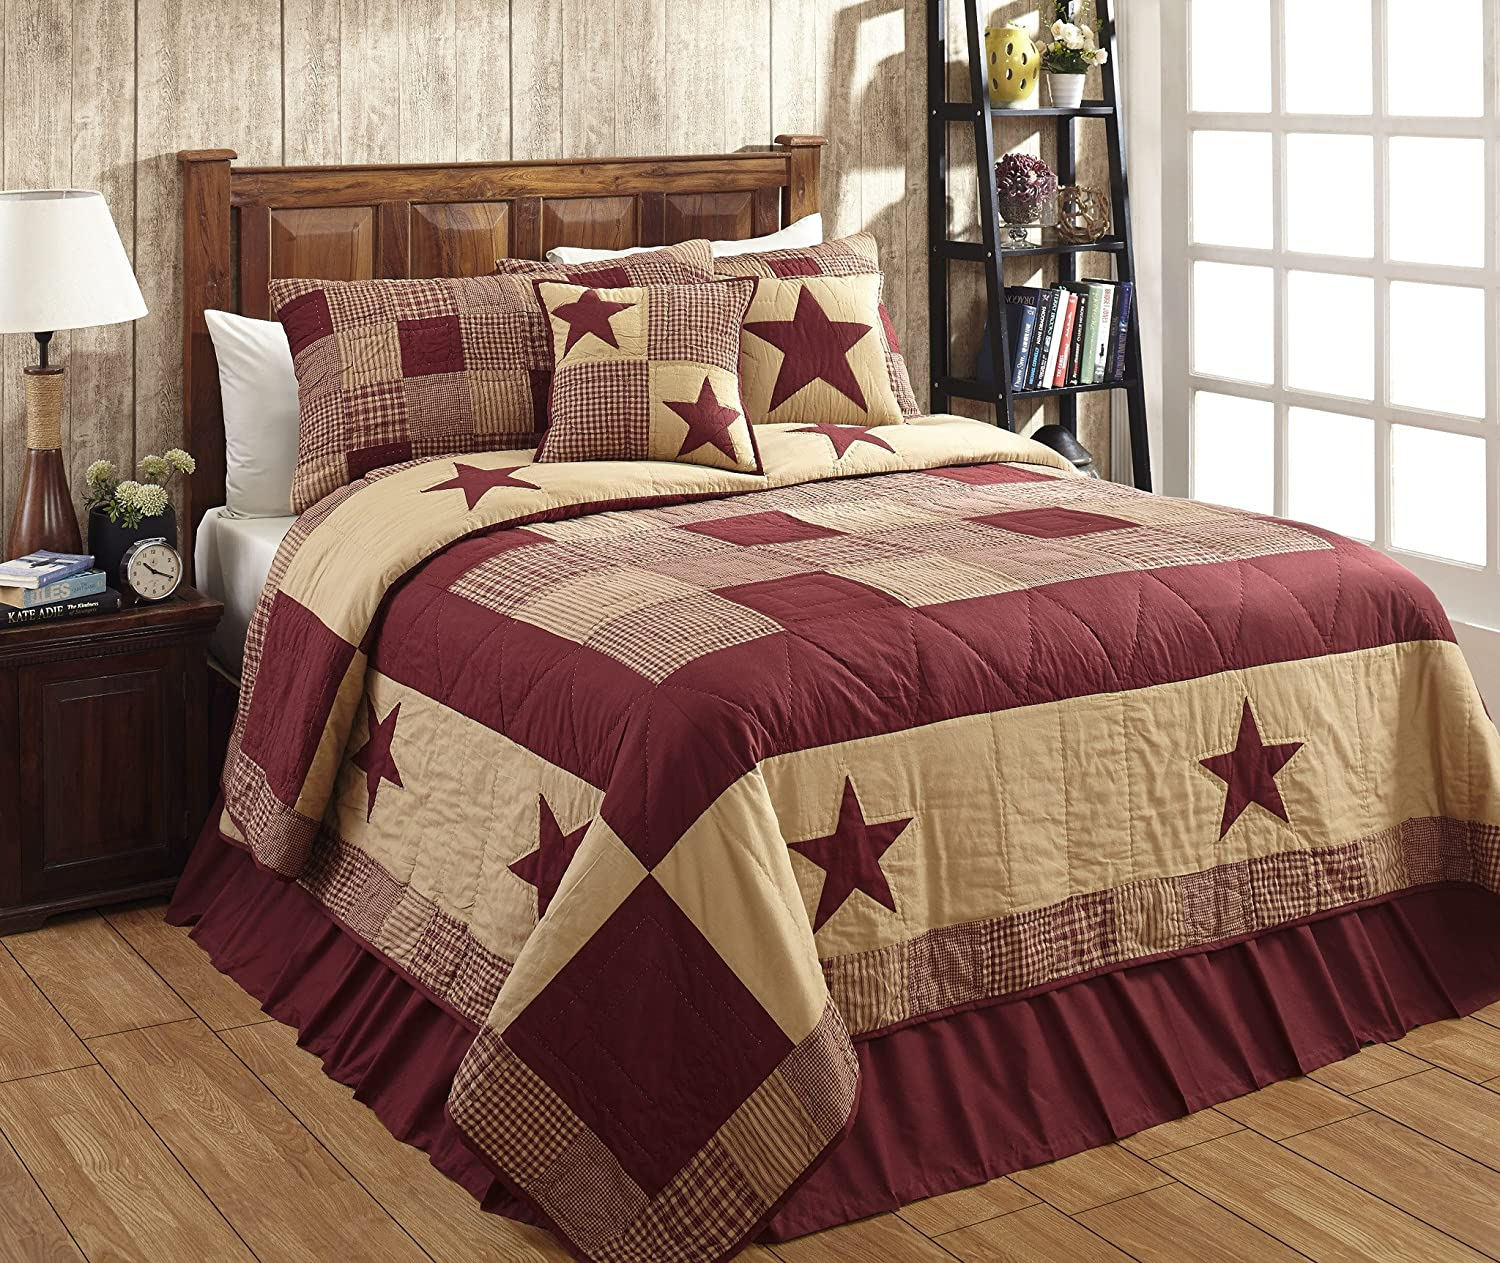 Beau Amazon.com: Jamestown Burgundy And Tan Primitive Country Quilt Set   3  Piece (Queen/Full (3 Pc)): Home U0026 Kitchen